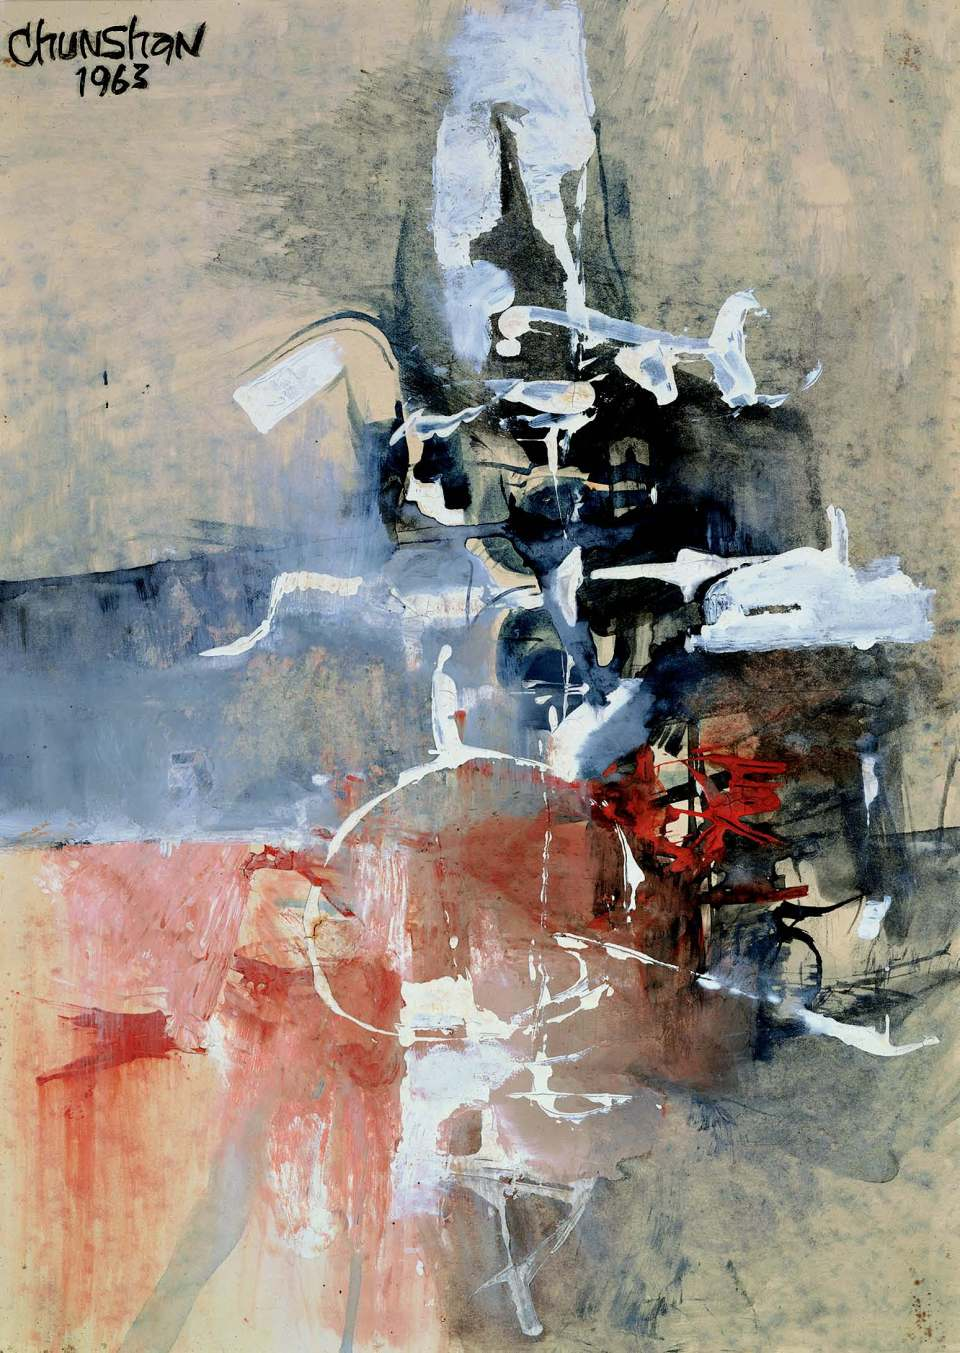 """ChunShan Lee, """"Abstract Painting"""", watercolor on paper, 1963"""